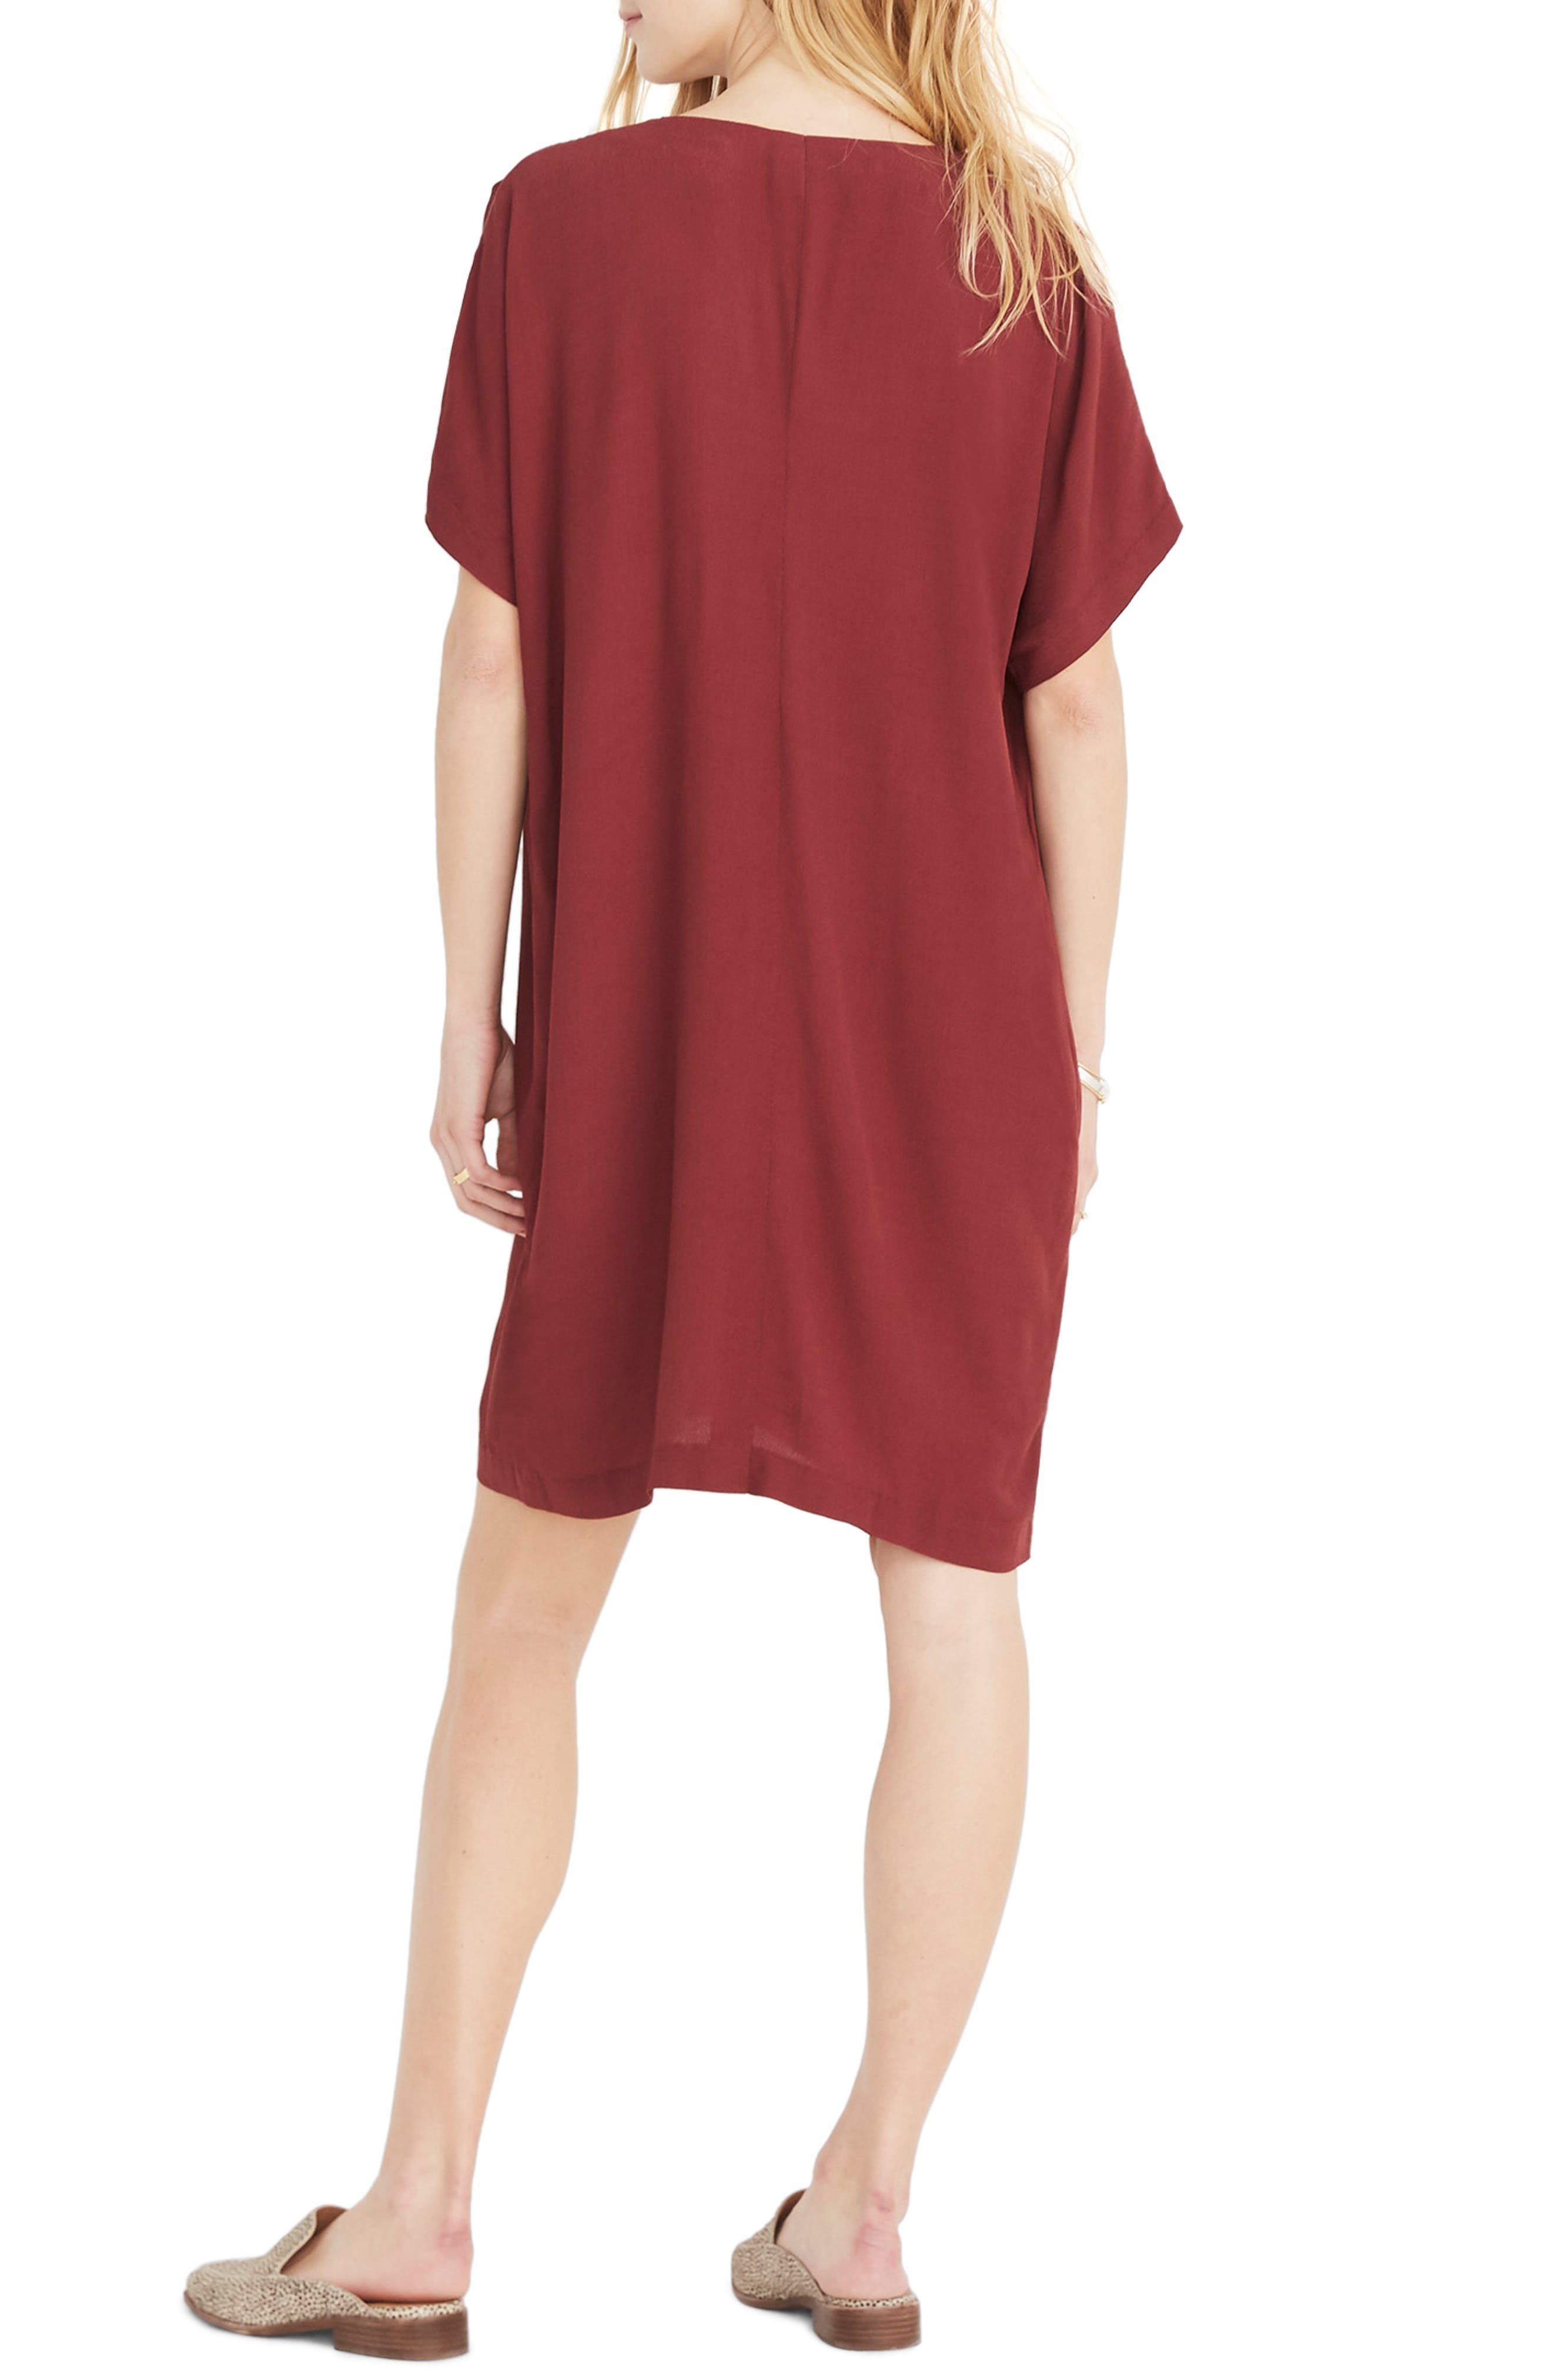 MADEWELL, Button Front Easy Dress, Alternate thumbnail 4, color, RICH BURGUNDY